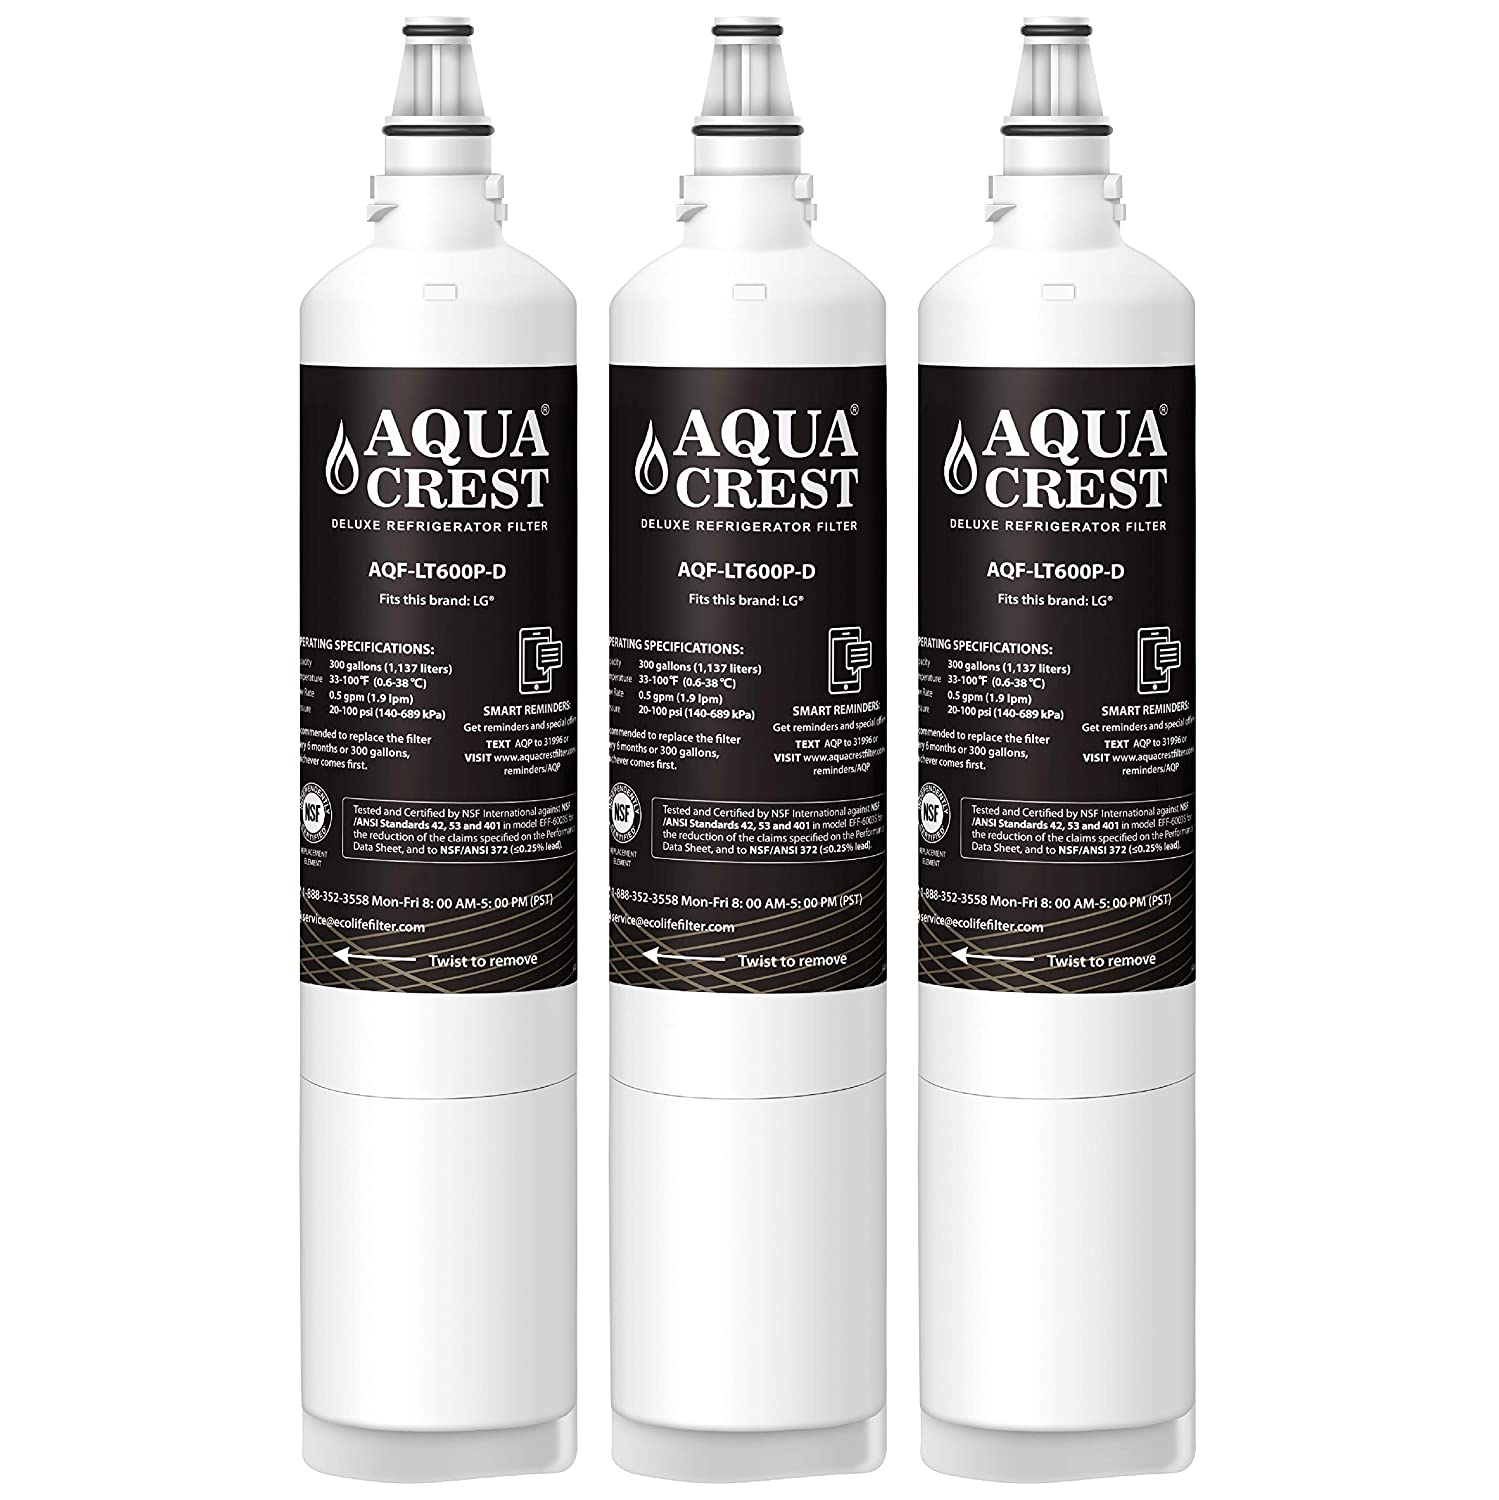 AQUACREST NSF 401&53&42 Refrigerator Water Filter, Compatible with LG LT600P, 5231JA2006B, 5231JA2006A, KENMORE 46-9990, 9990 (Pack of 3)